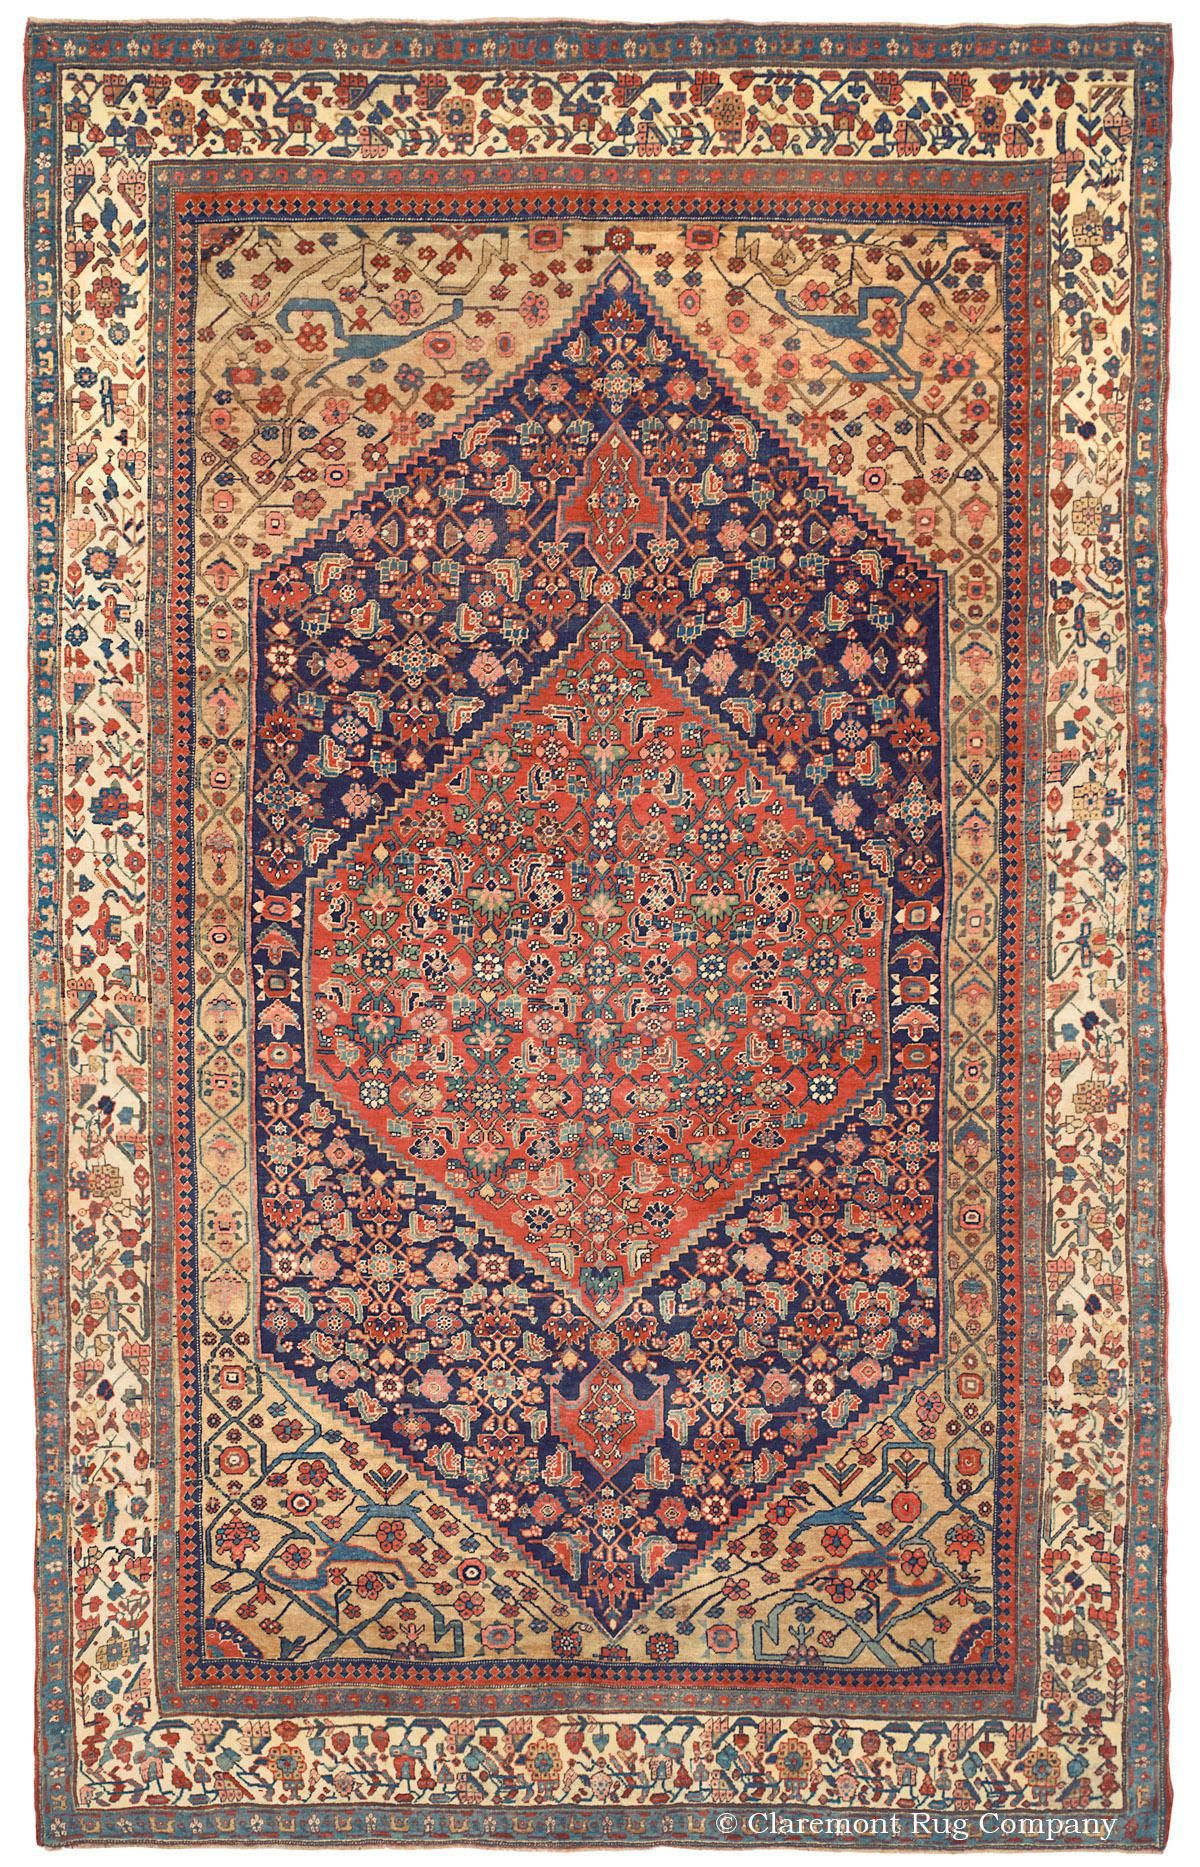 Halvai Bijar Northwest Persian 7ft 6in X 12ft 0in Circa 1900 Oriental Rug Rugs Rugs On Carpet